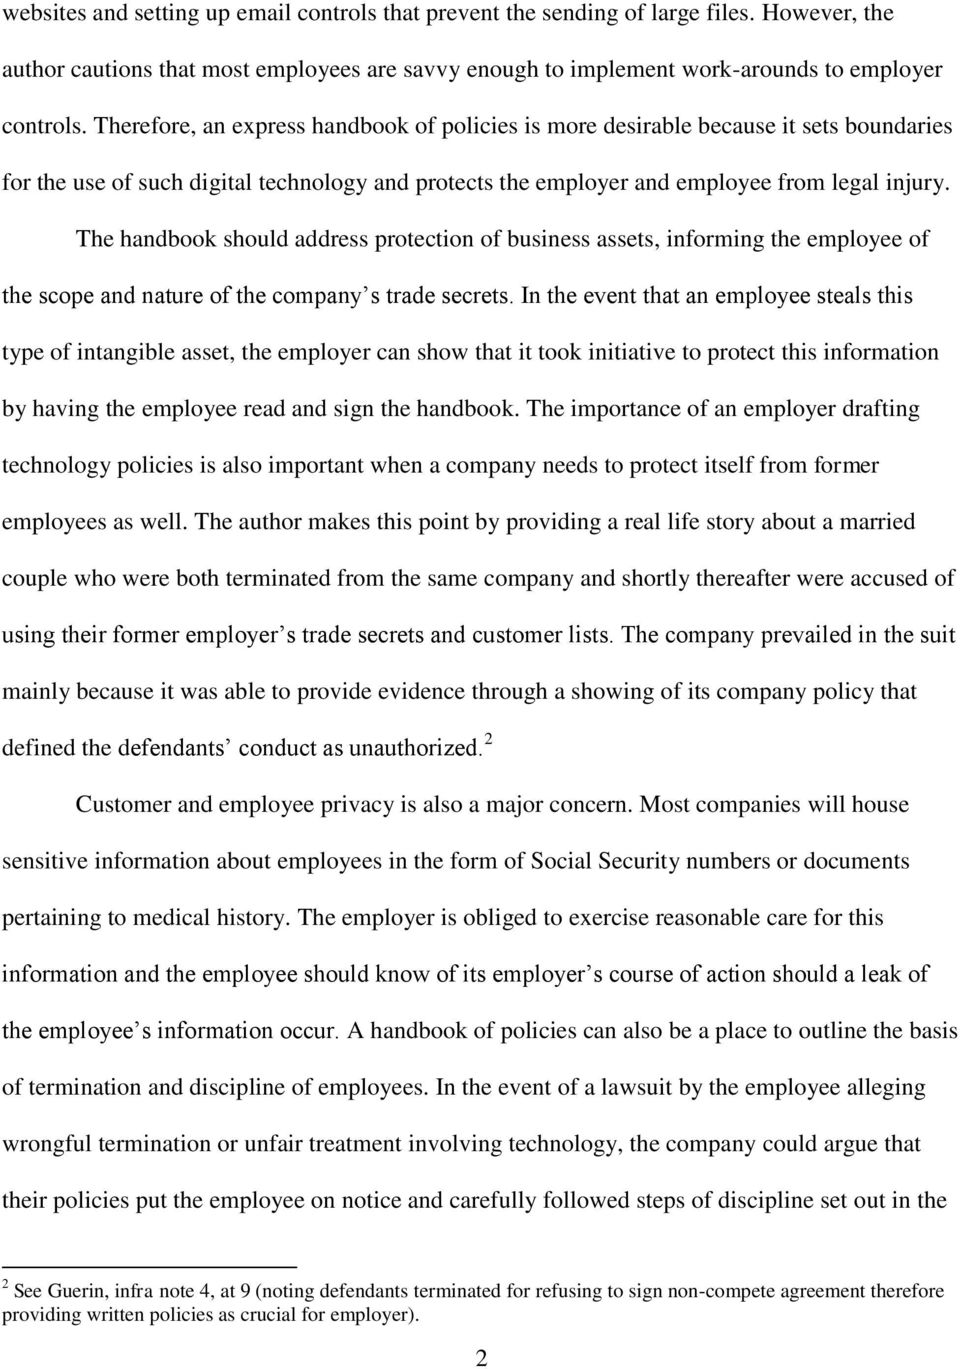 The handbook should address protection of business assets, informing the employee of the scope and nature of the company s trade secrets.